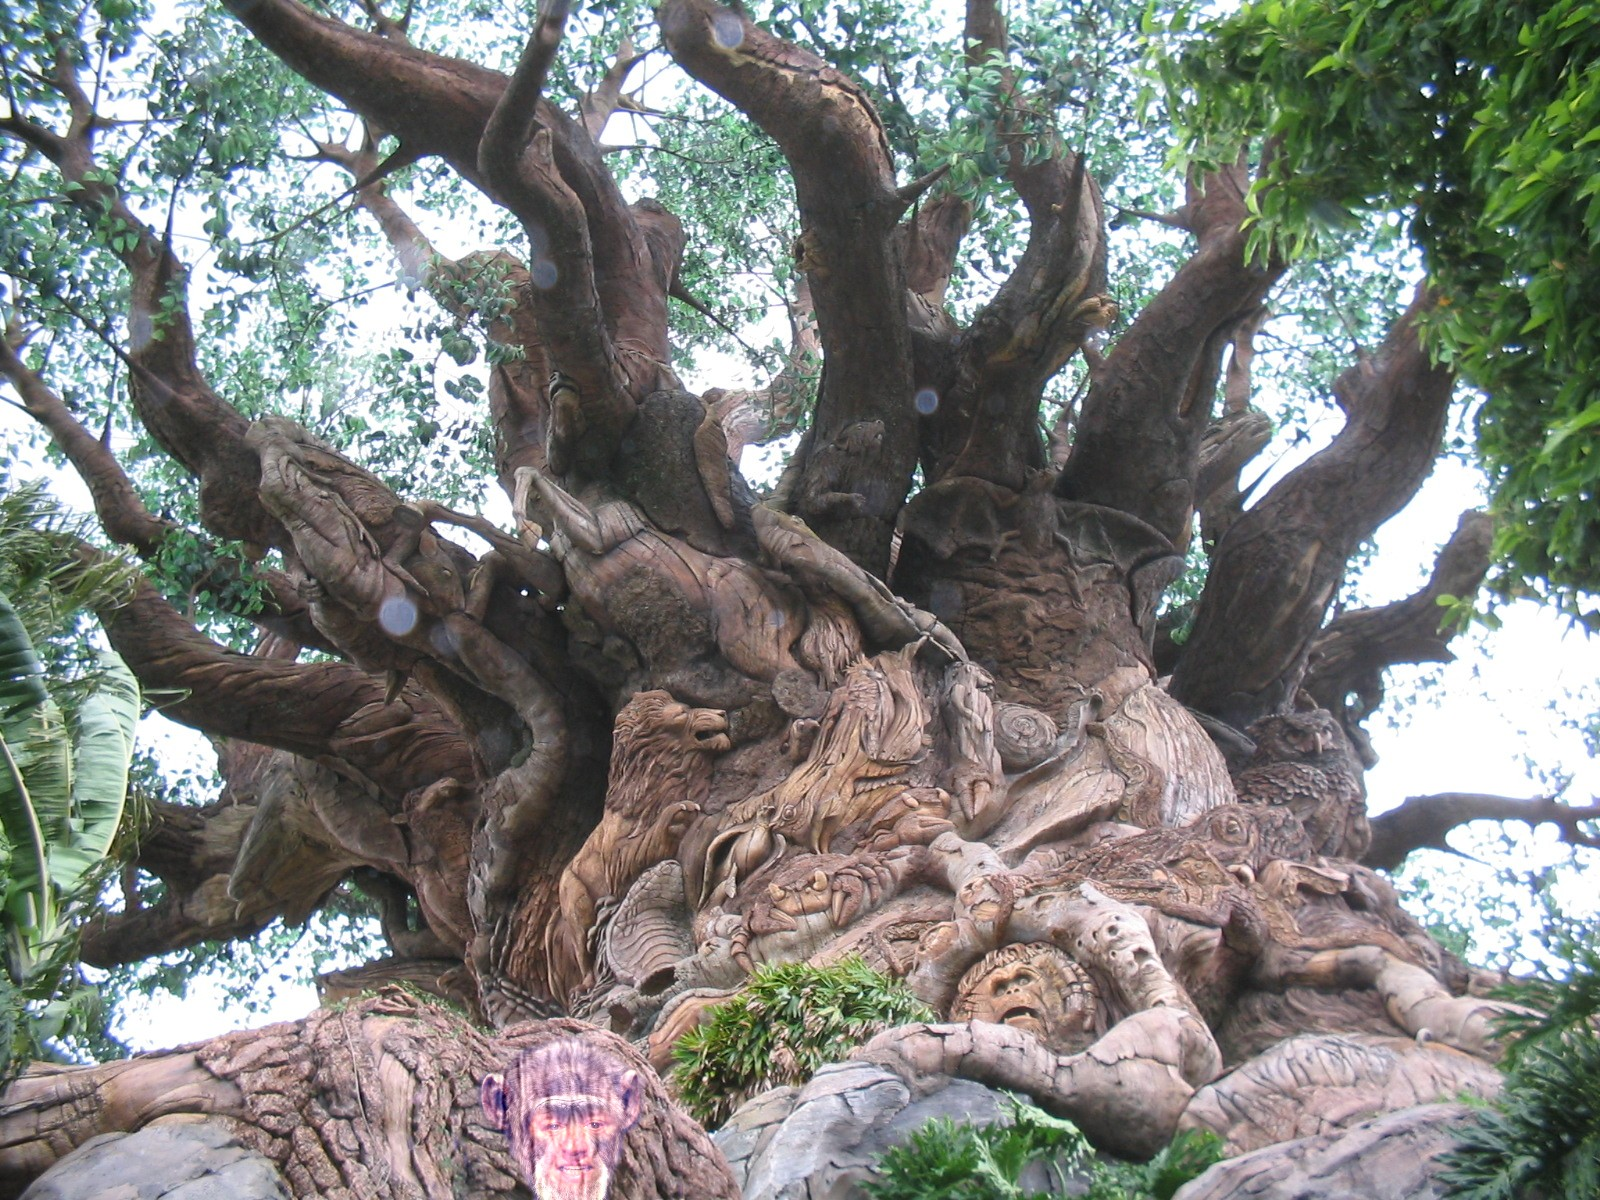 How many animals can you find in the Tree of Life? Hey, there's a grumpy person on here!- Two Grumpy People, 2015